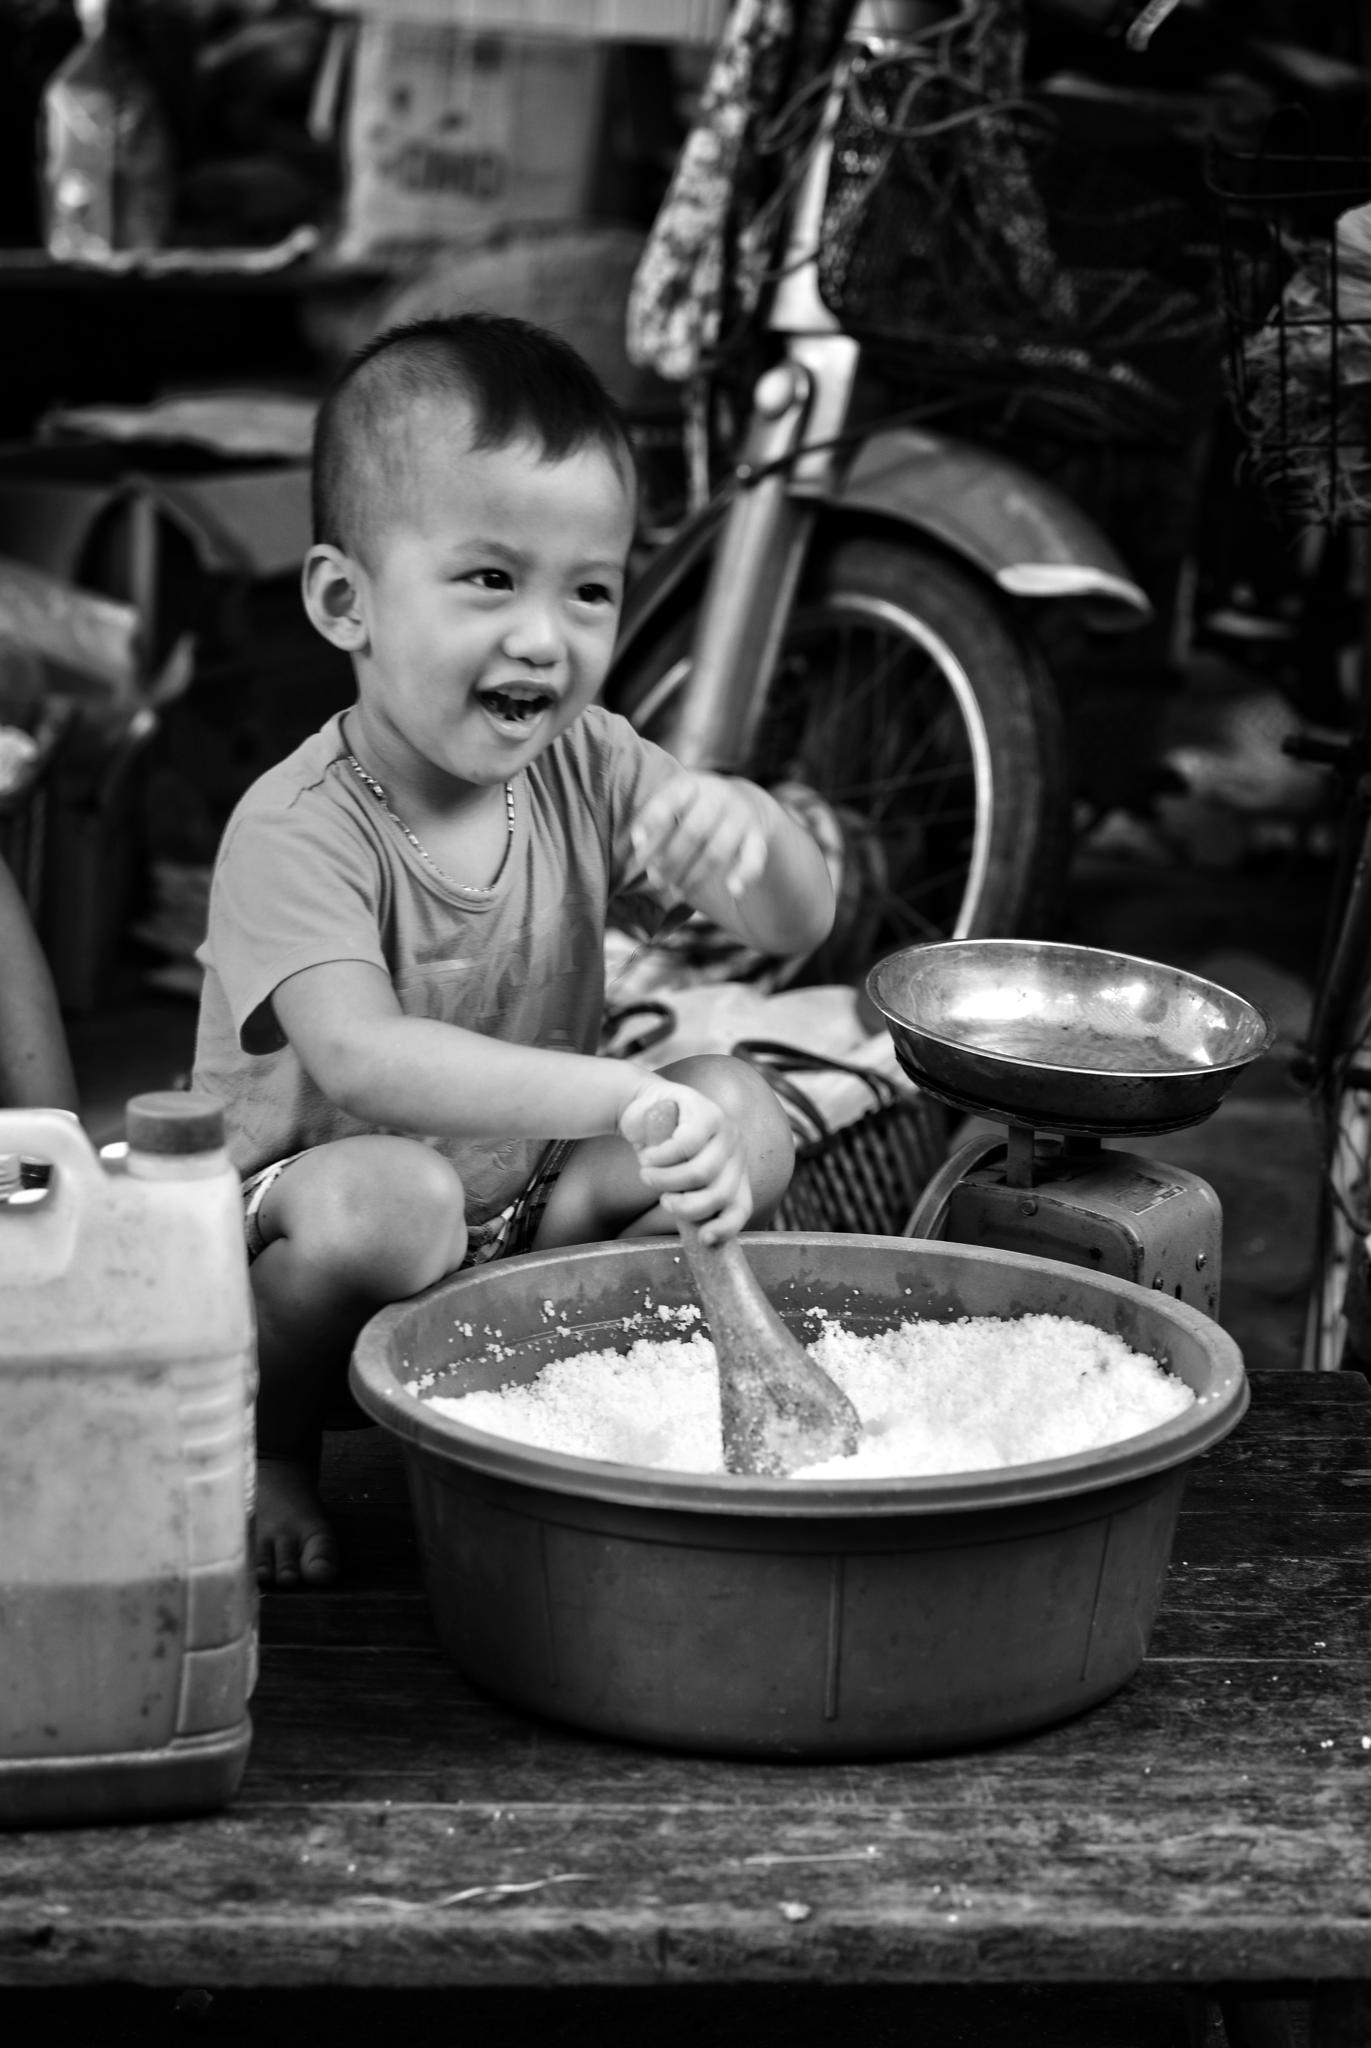 Salt stall owner portrait by Hung Quang Ngo